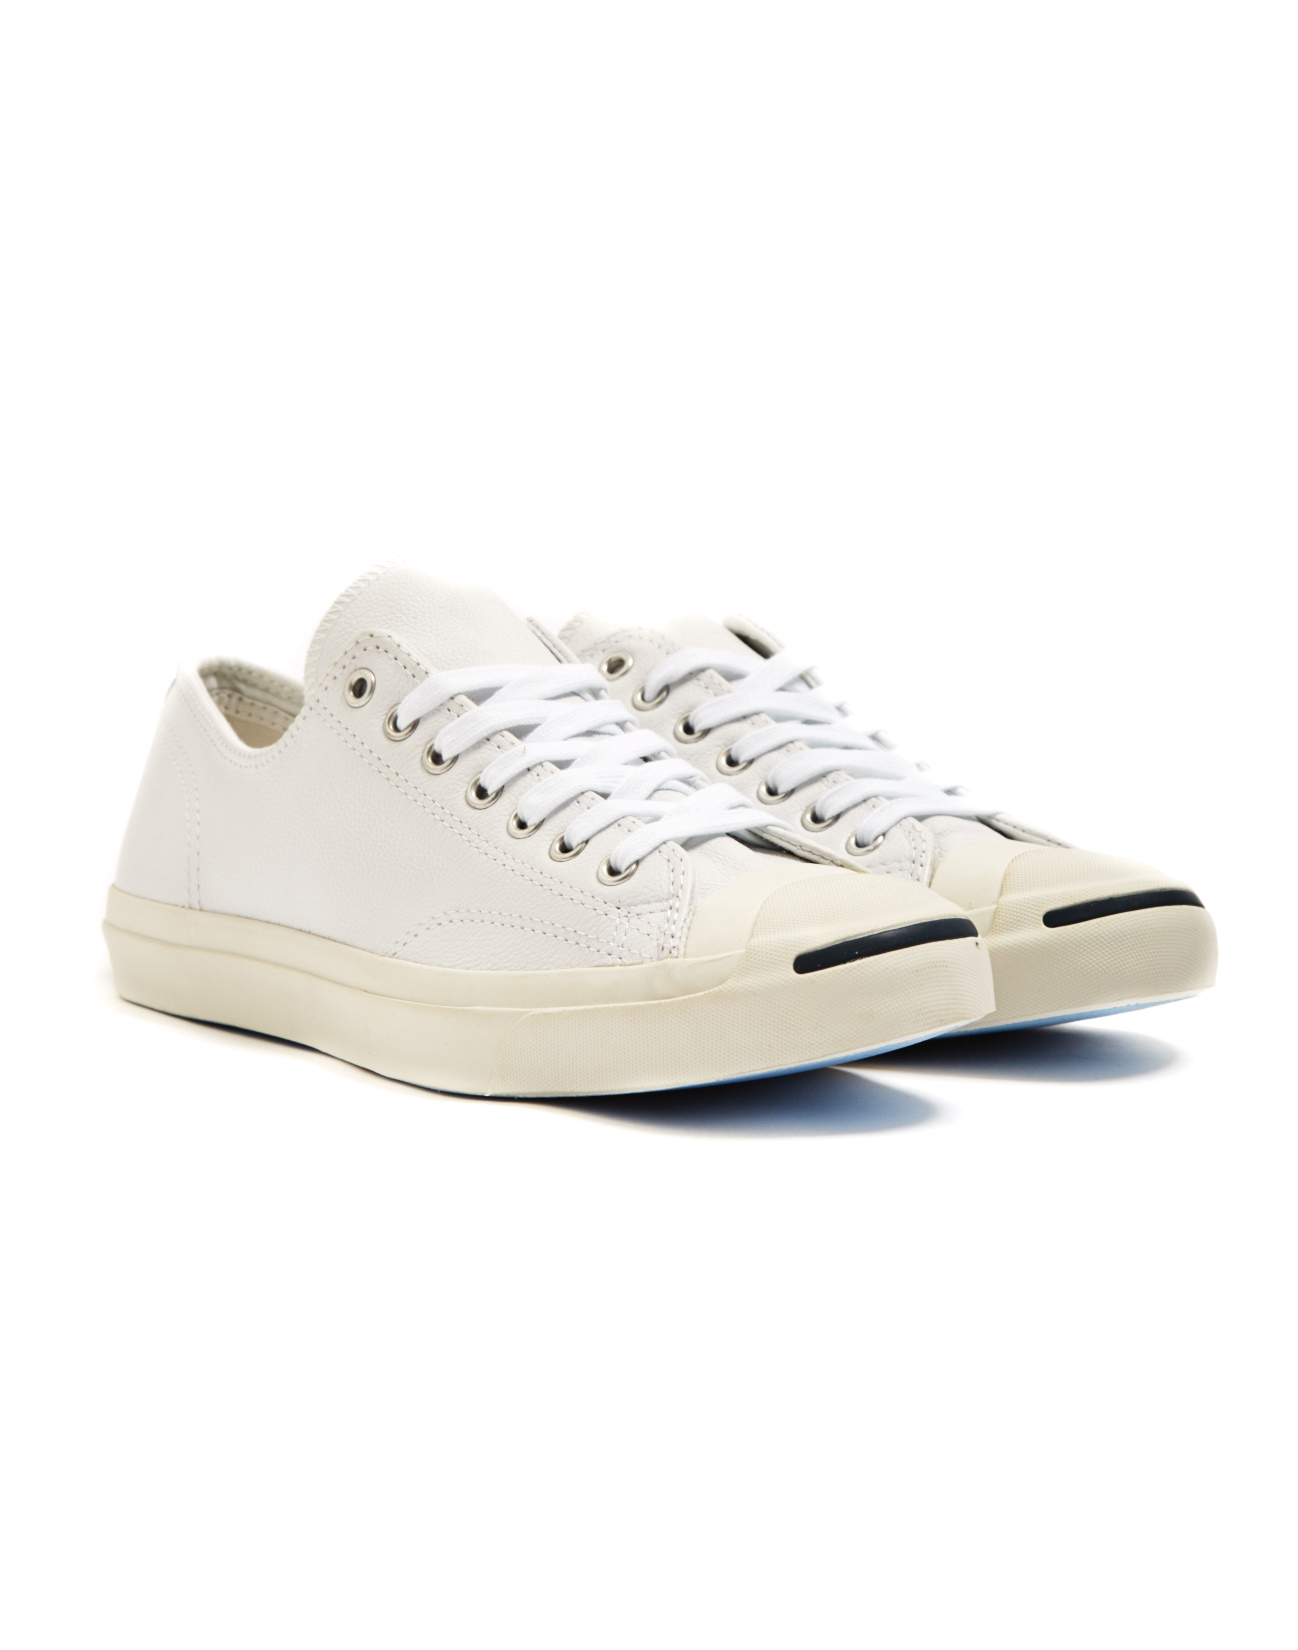 8ef0757175c6 Lyst - Converse Jack Purcell Jack Leather Trainer White navy in ...